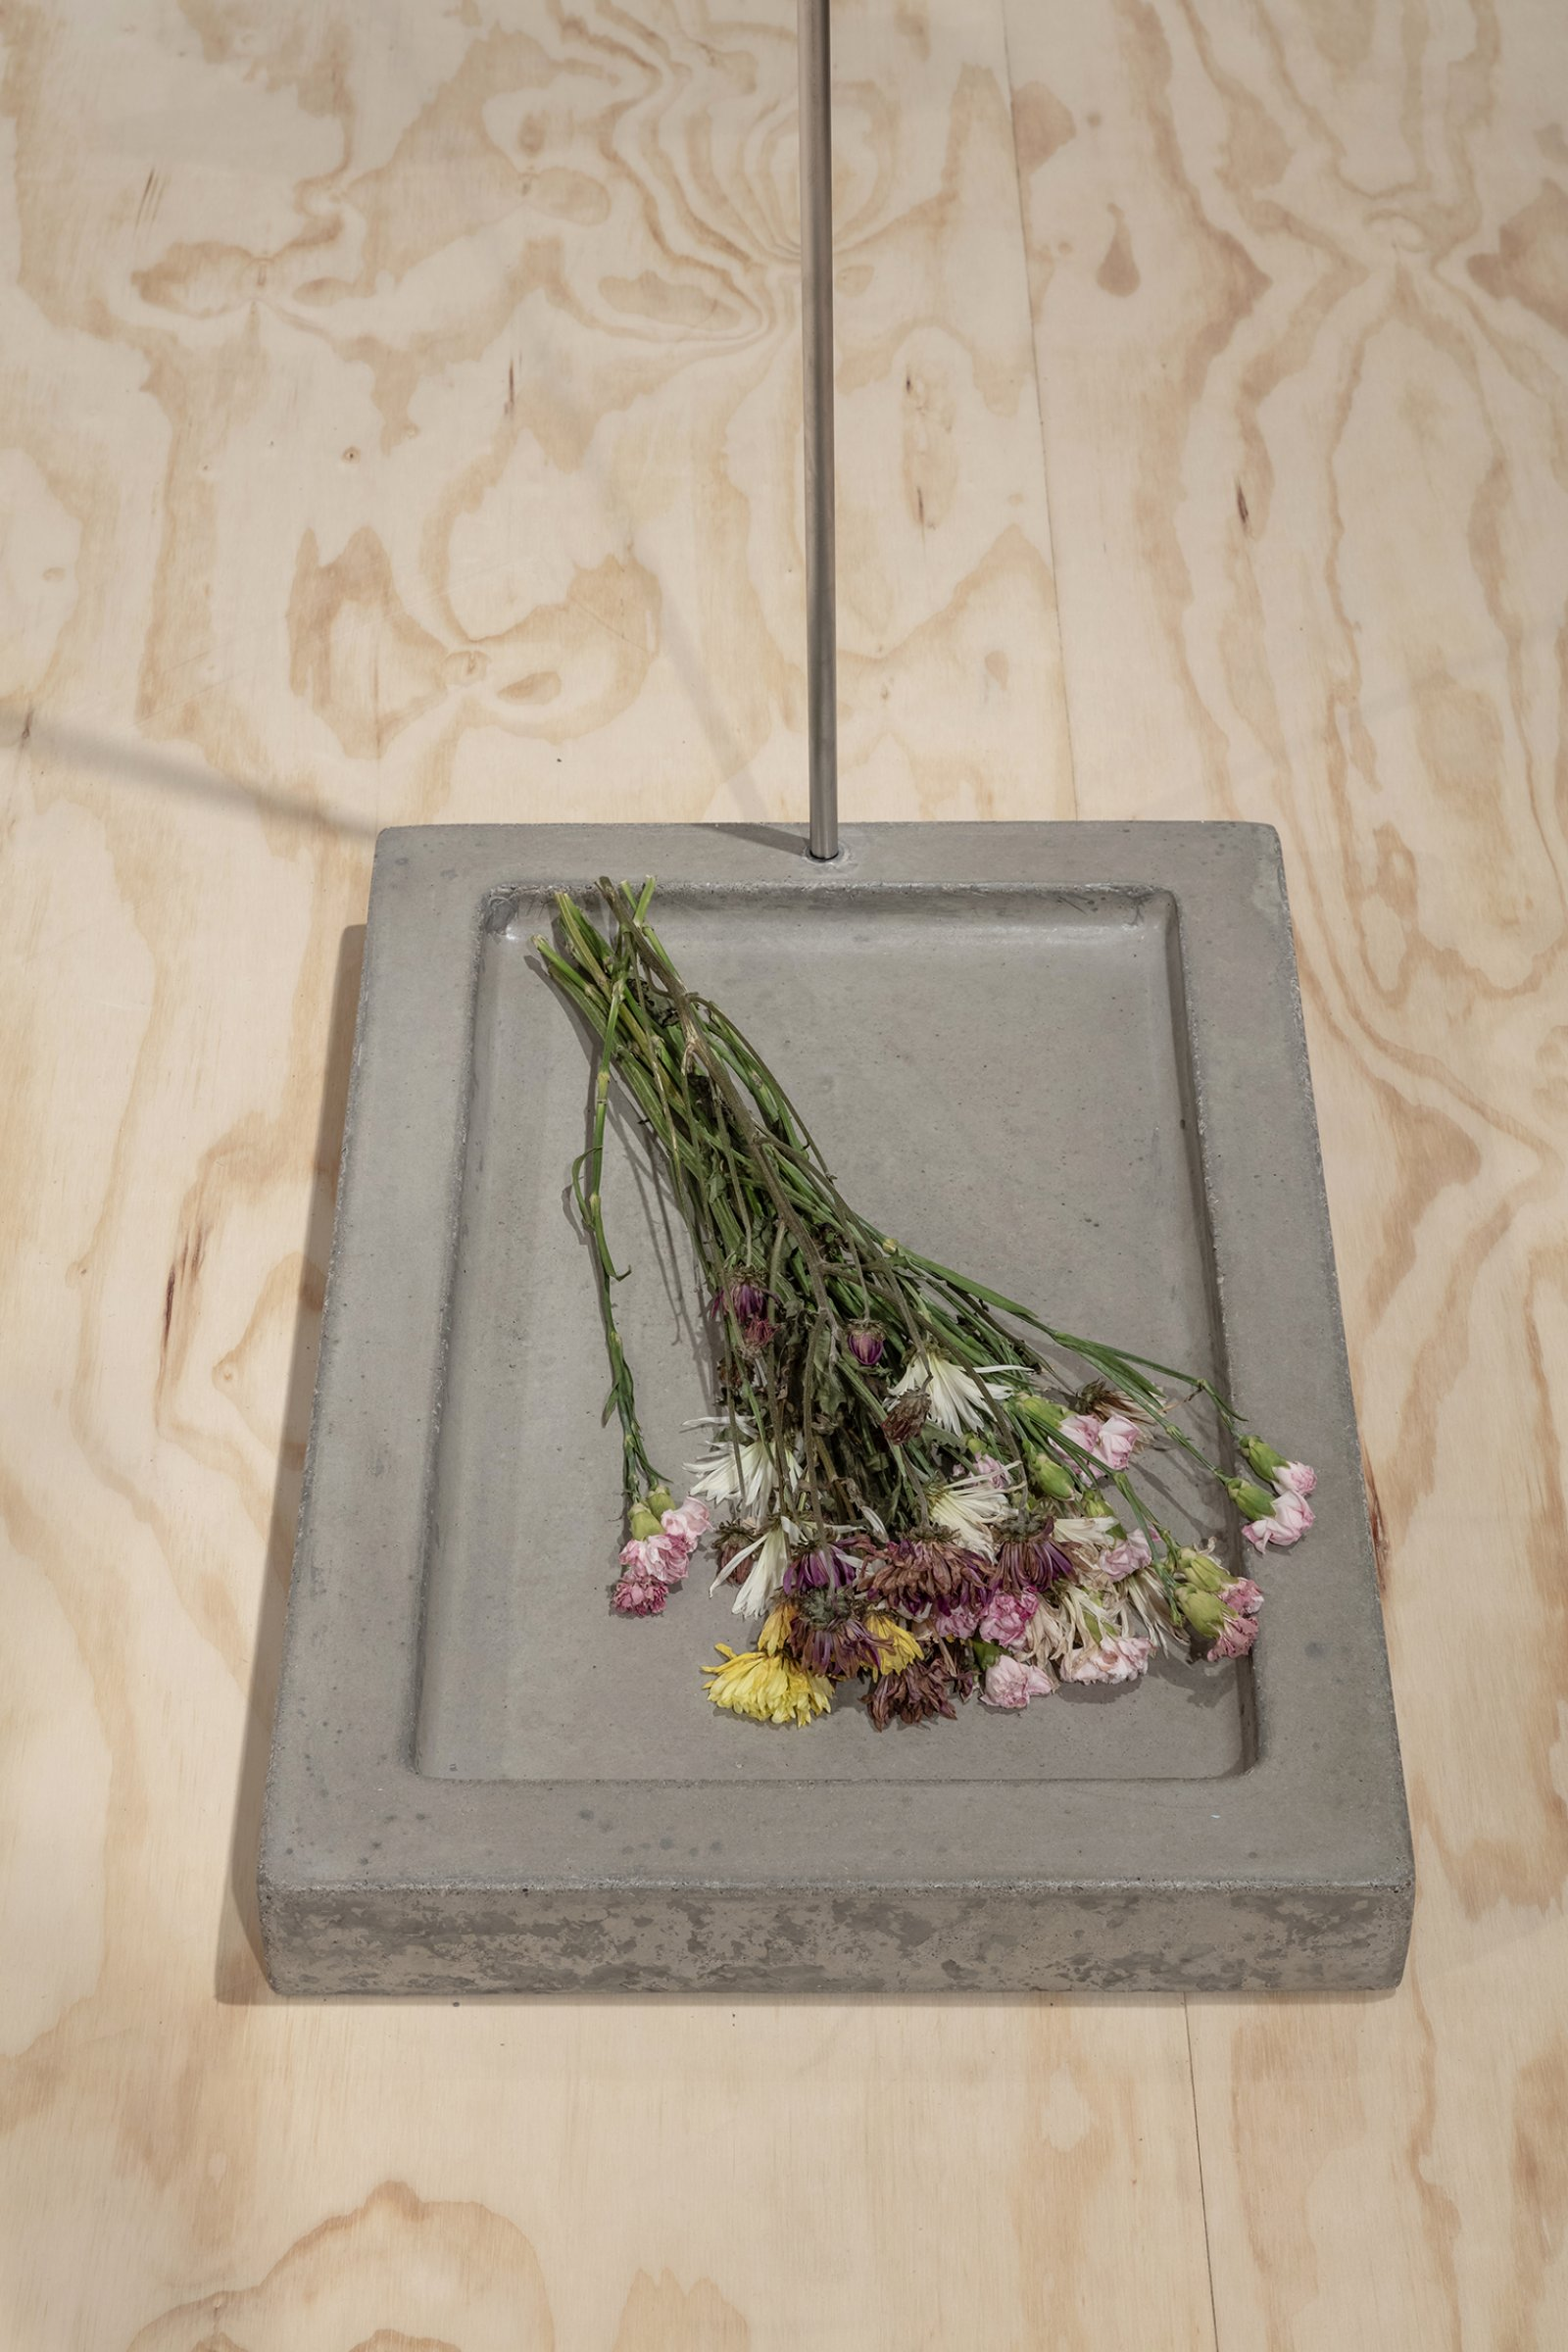 Duane Linklater, Speculative apparatus 7 for the work of nohkompan (detail), 2016, concrete, stainless steel, flowers, 24 x 16 x 43 in. (61 x 41 x 109 cm)